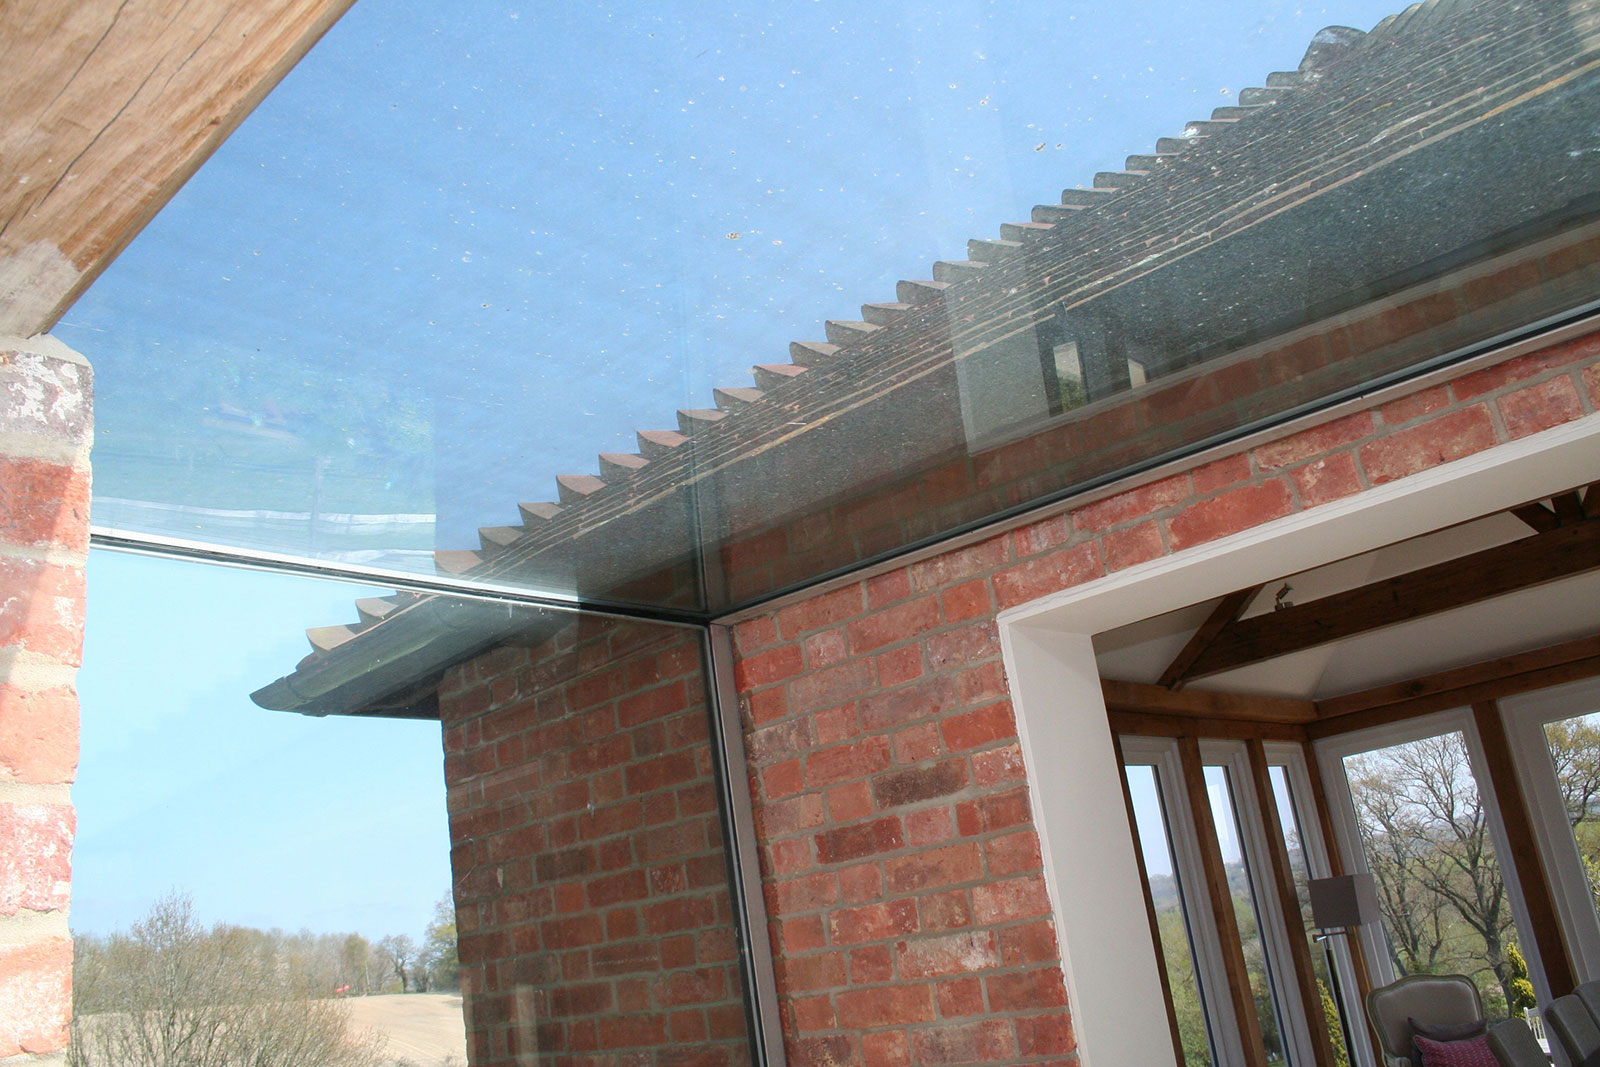 Structural Glass Linkway between Oast House and New Extension